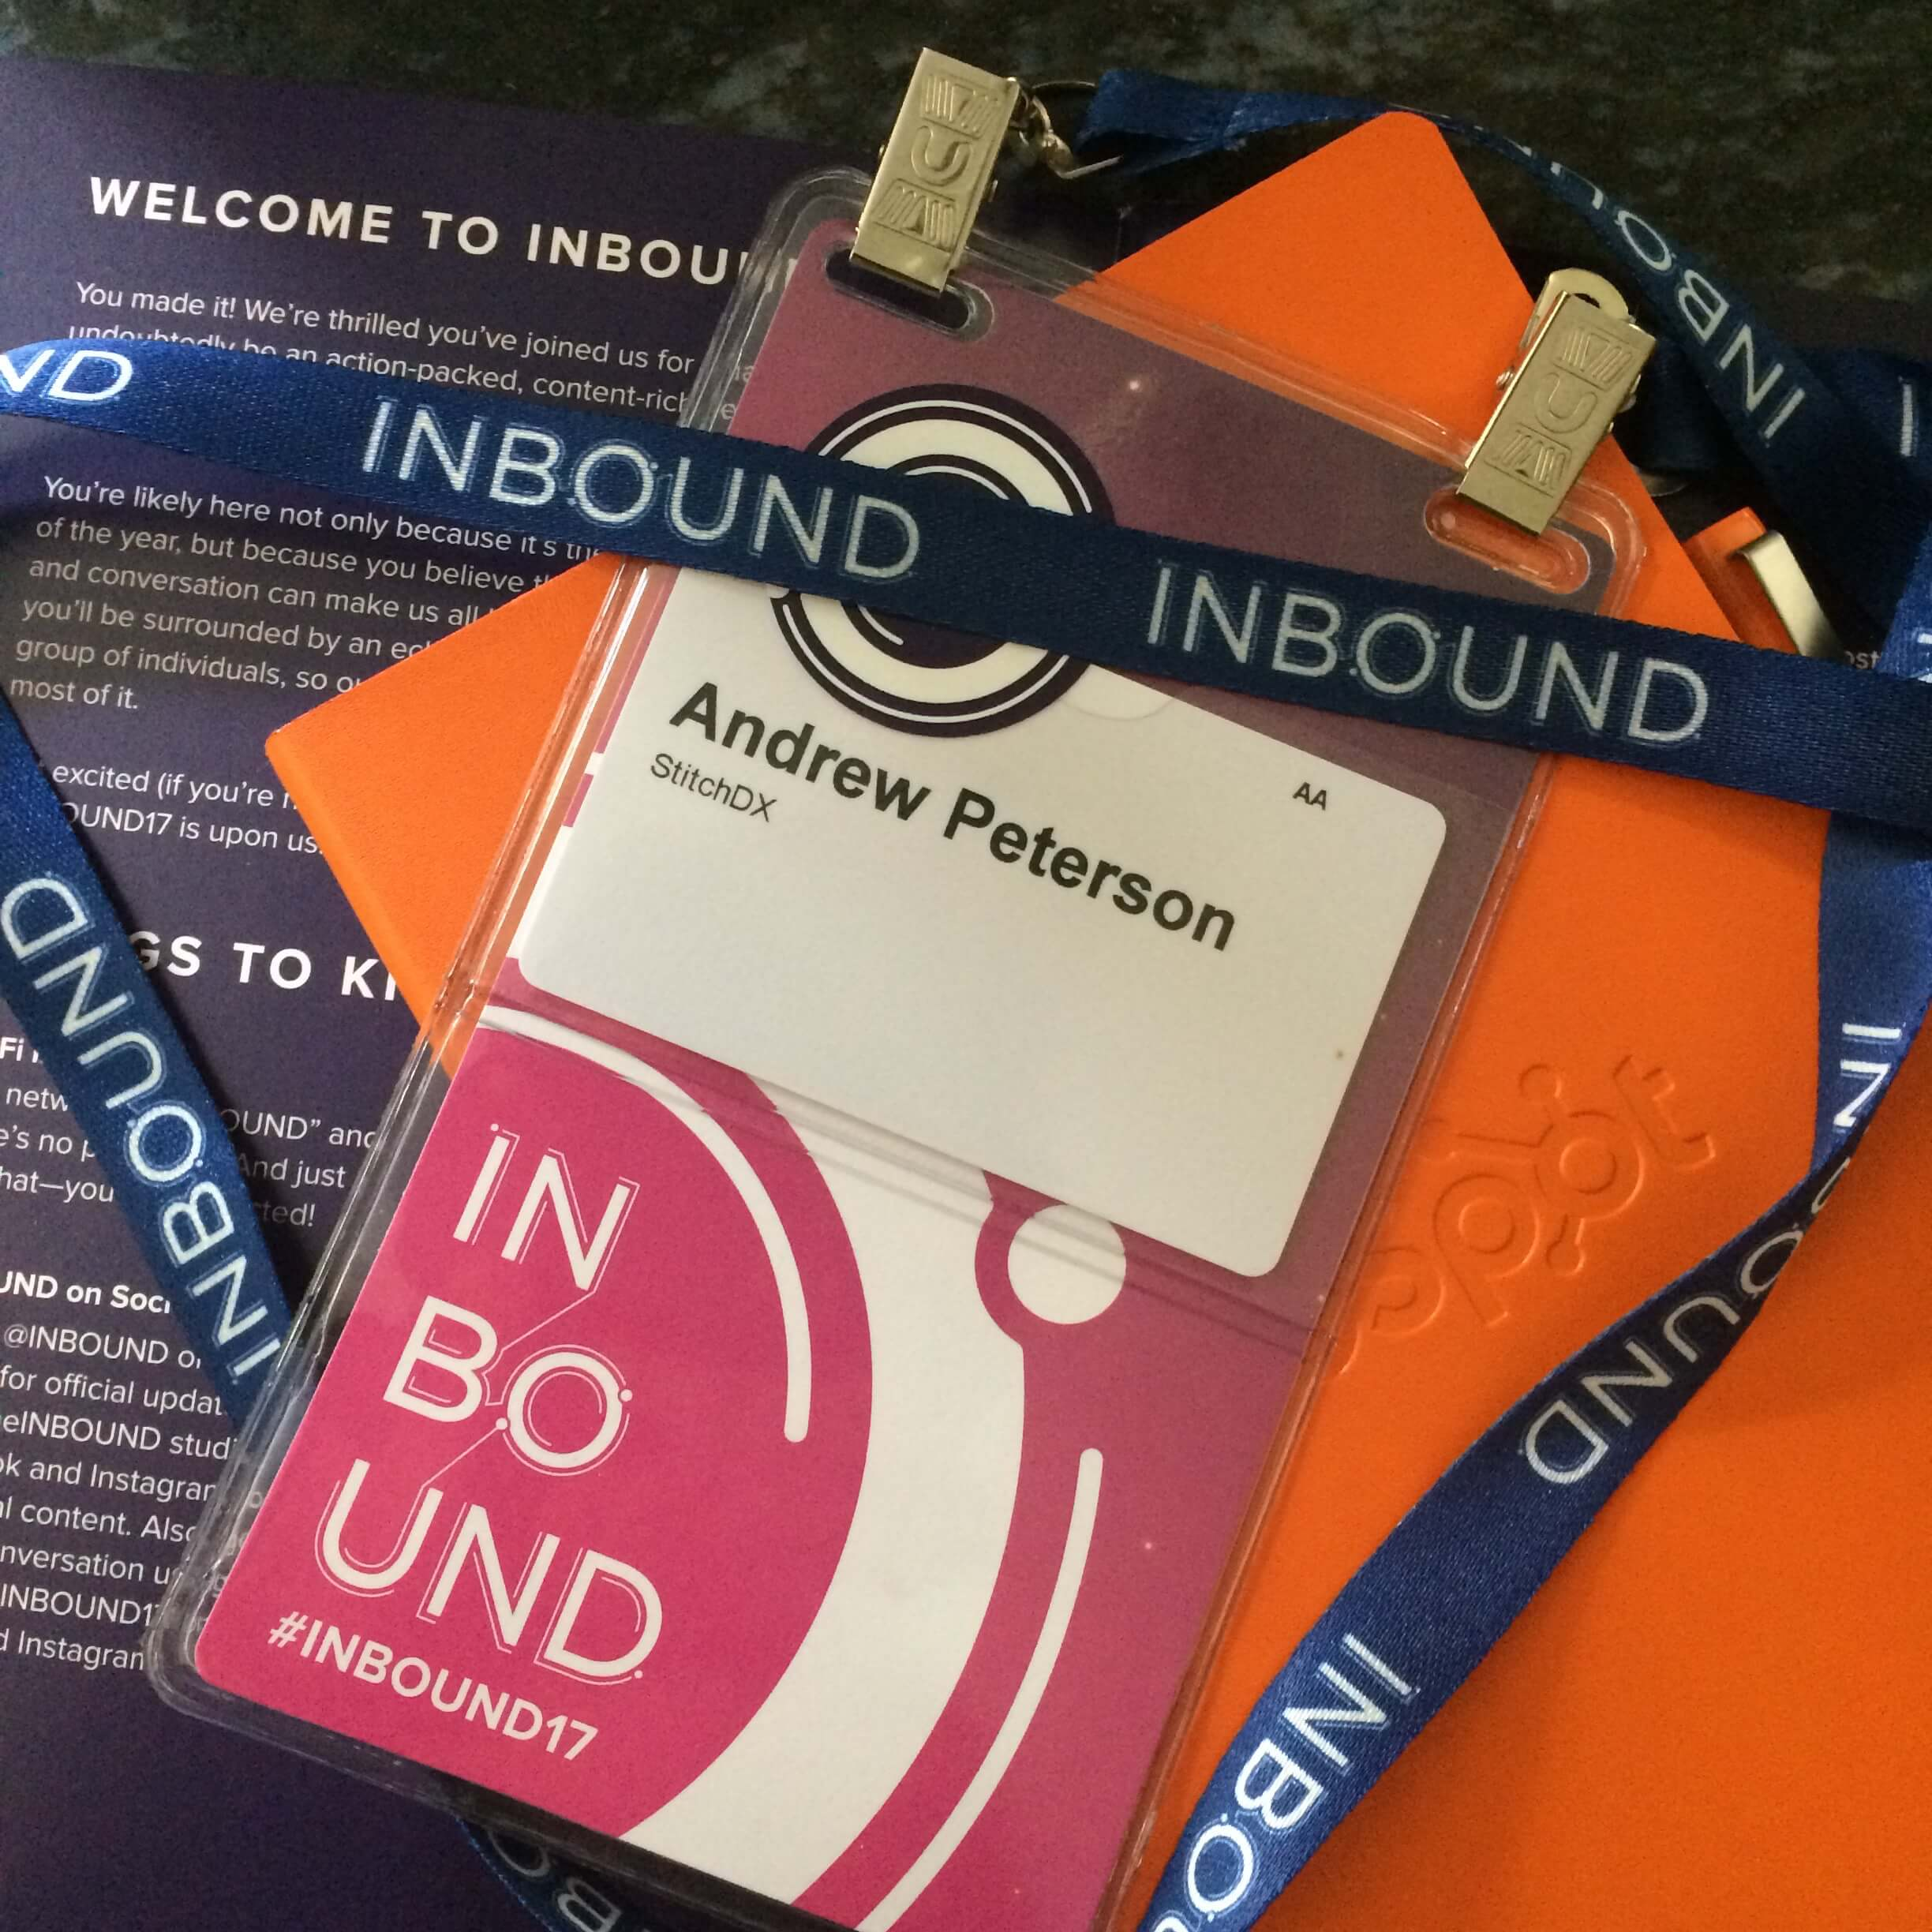 5 takeaways for online content marketers from HubSpot INBOUND 17